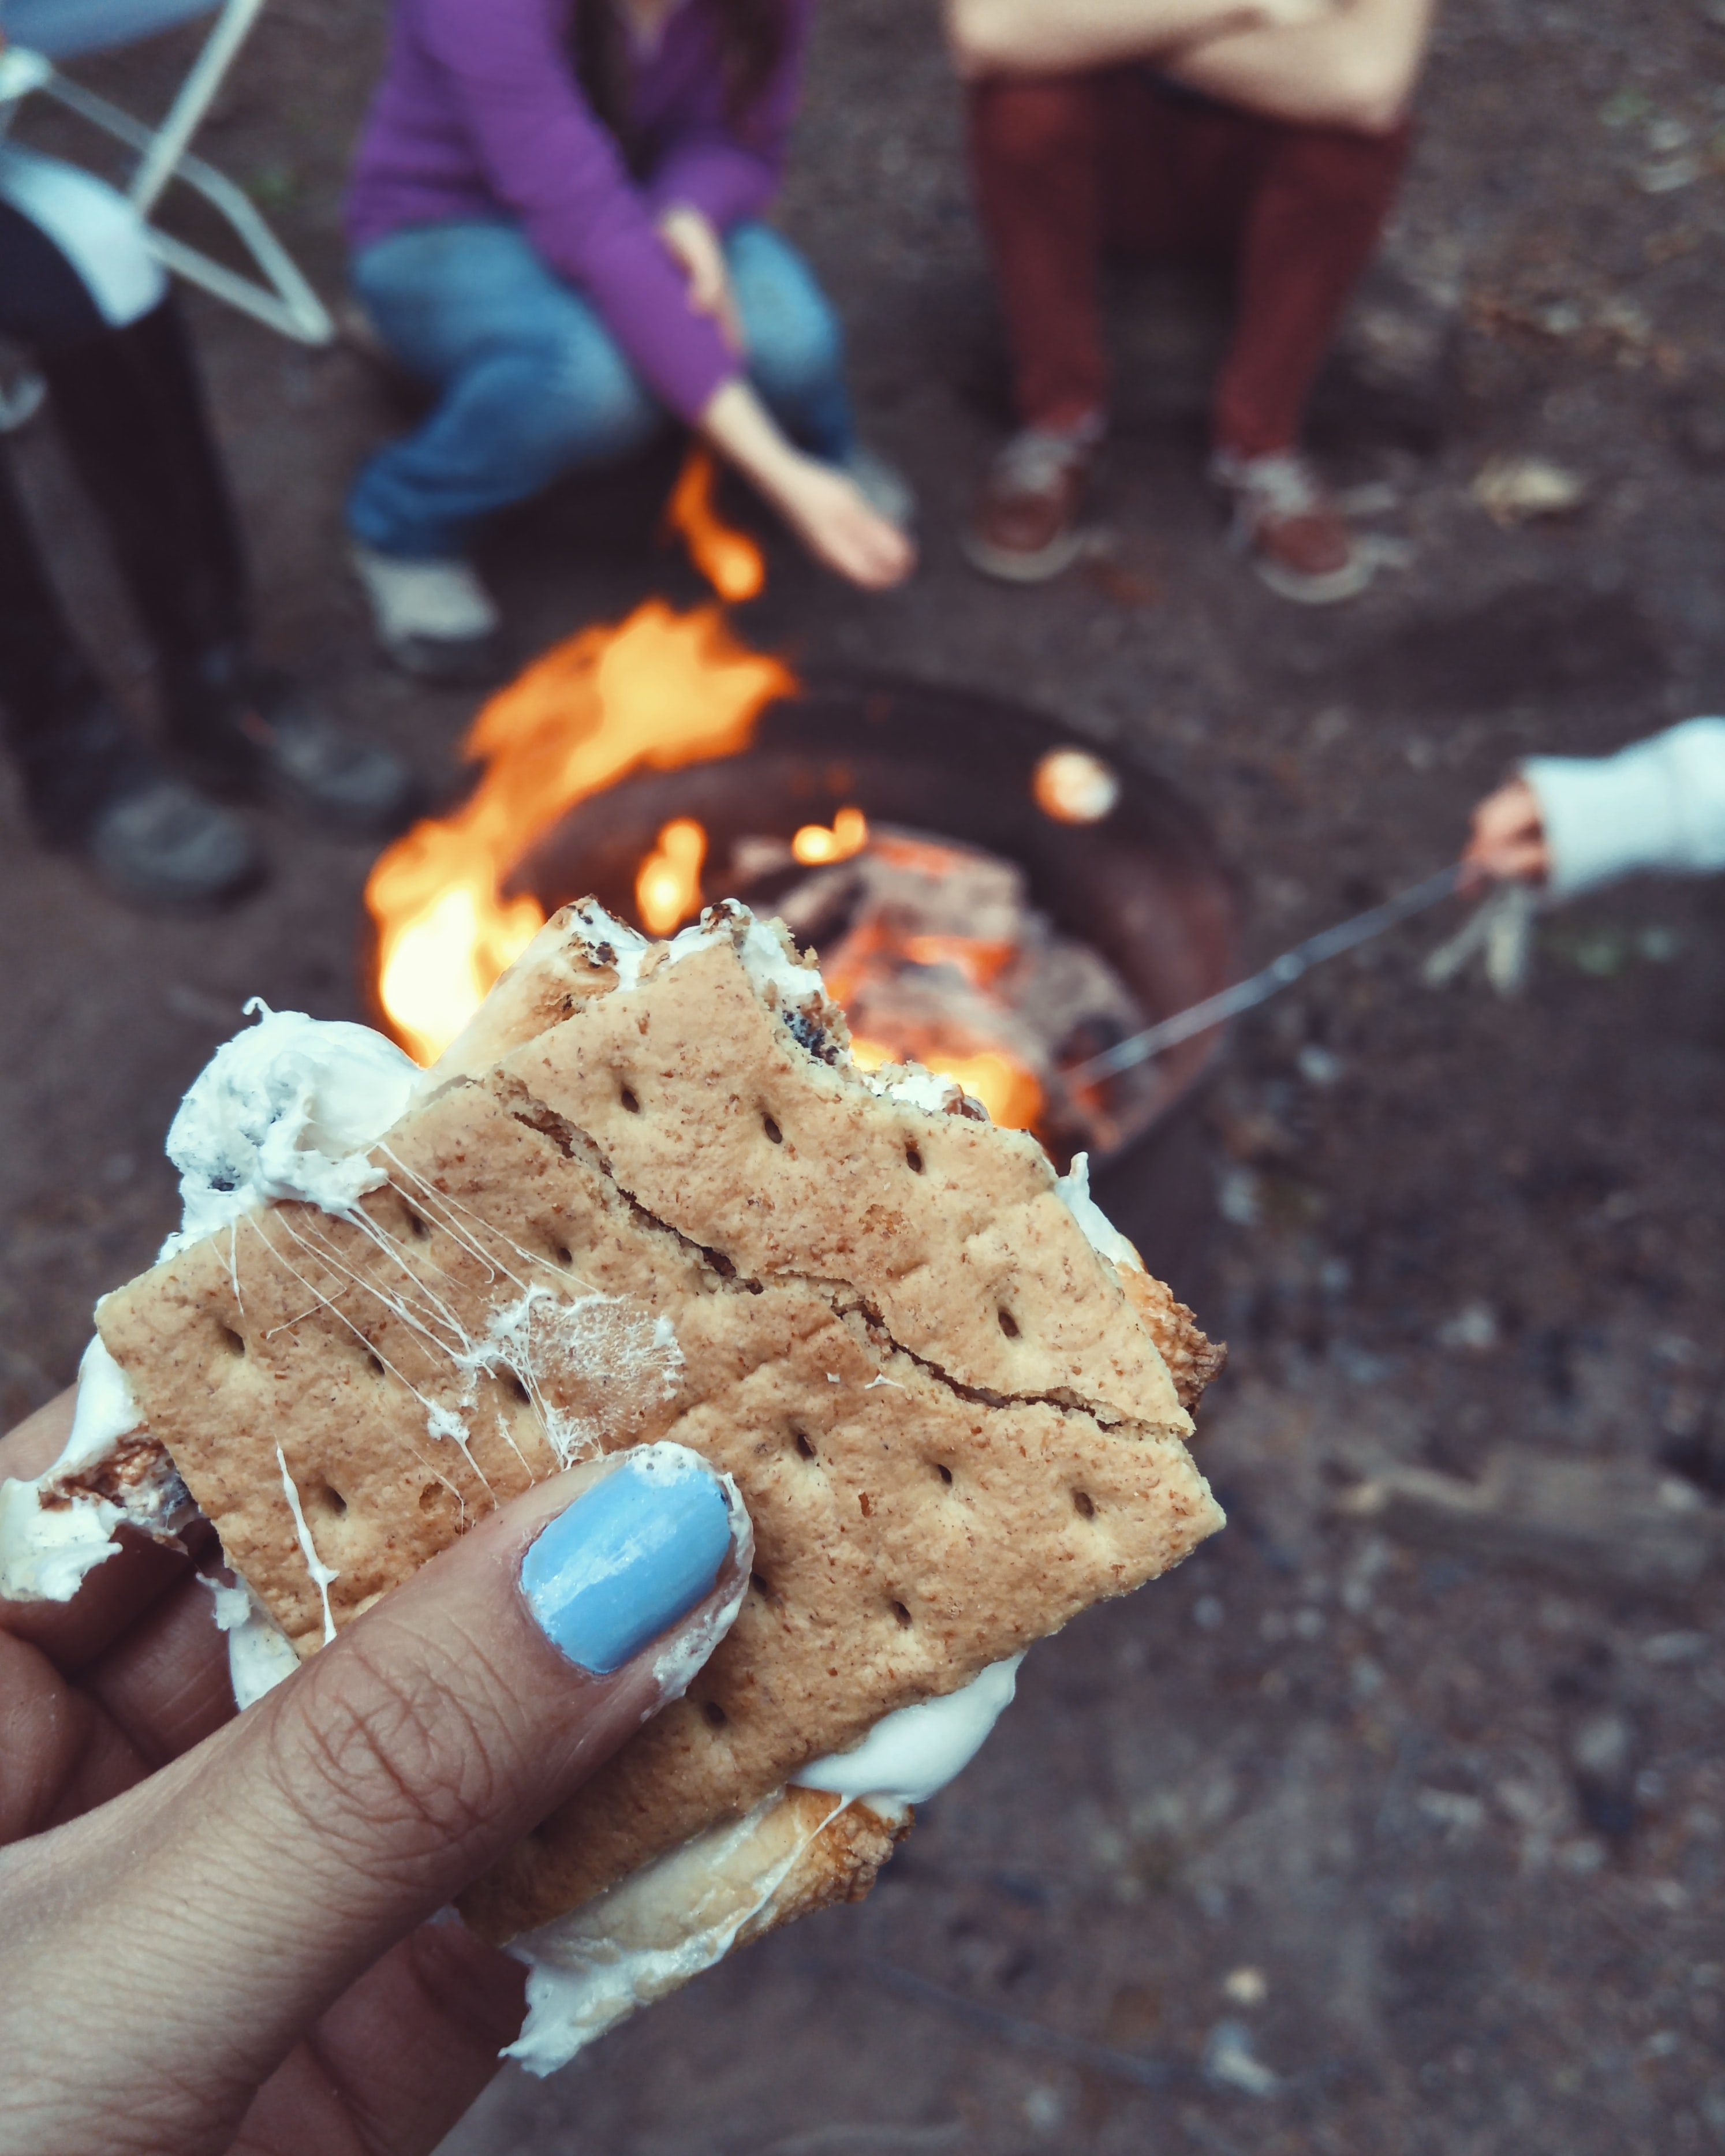 Close-up of the hand of a woman holding a piece of S'more at a campfire.